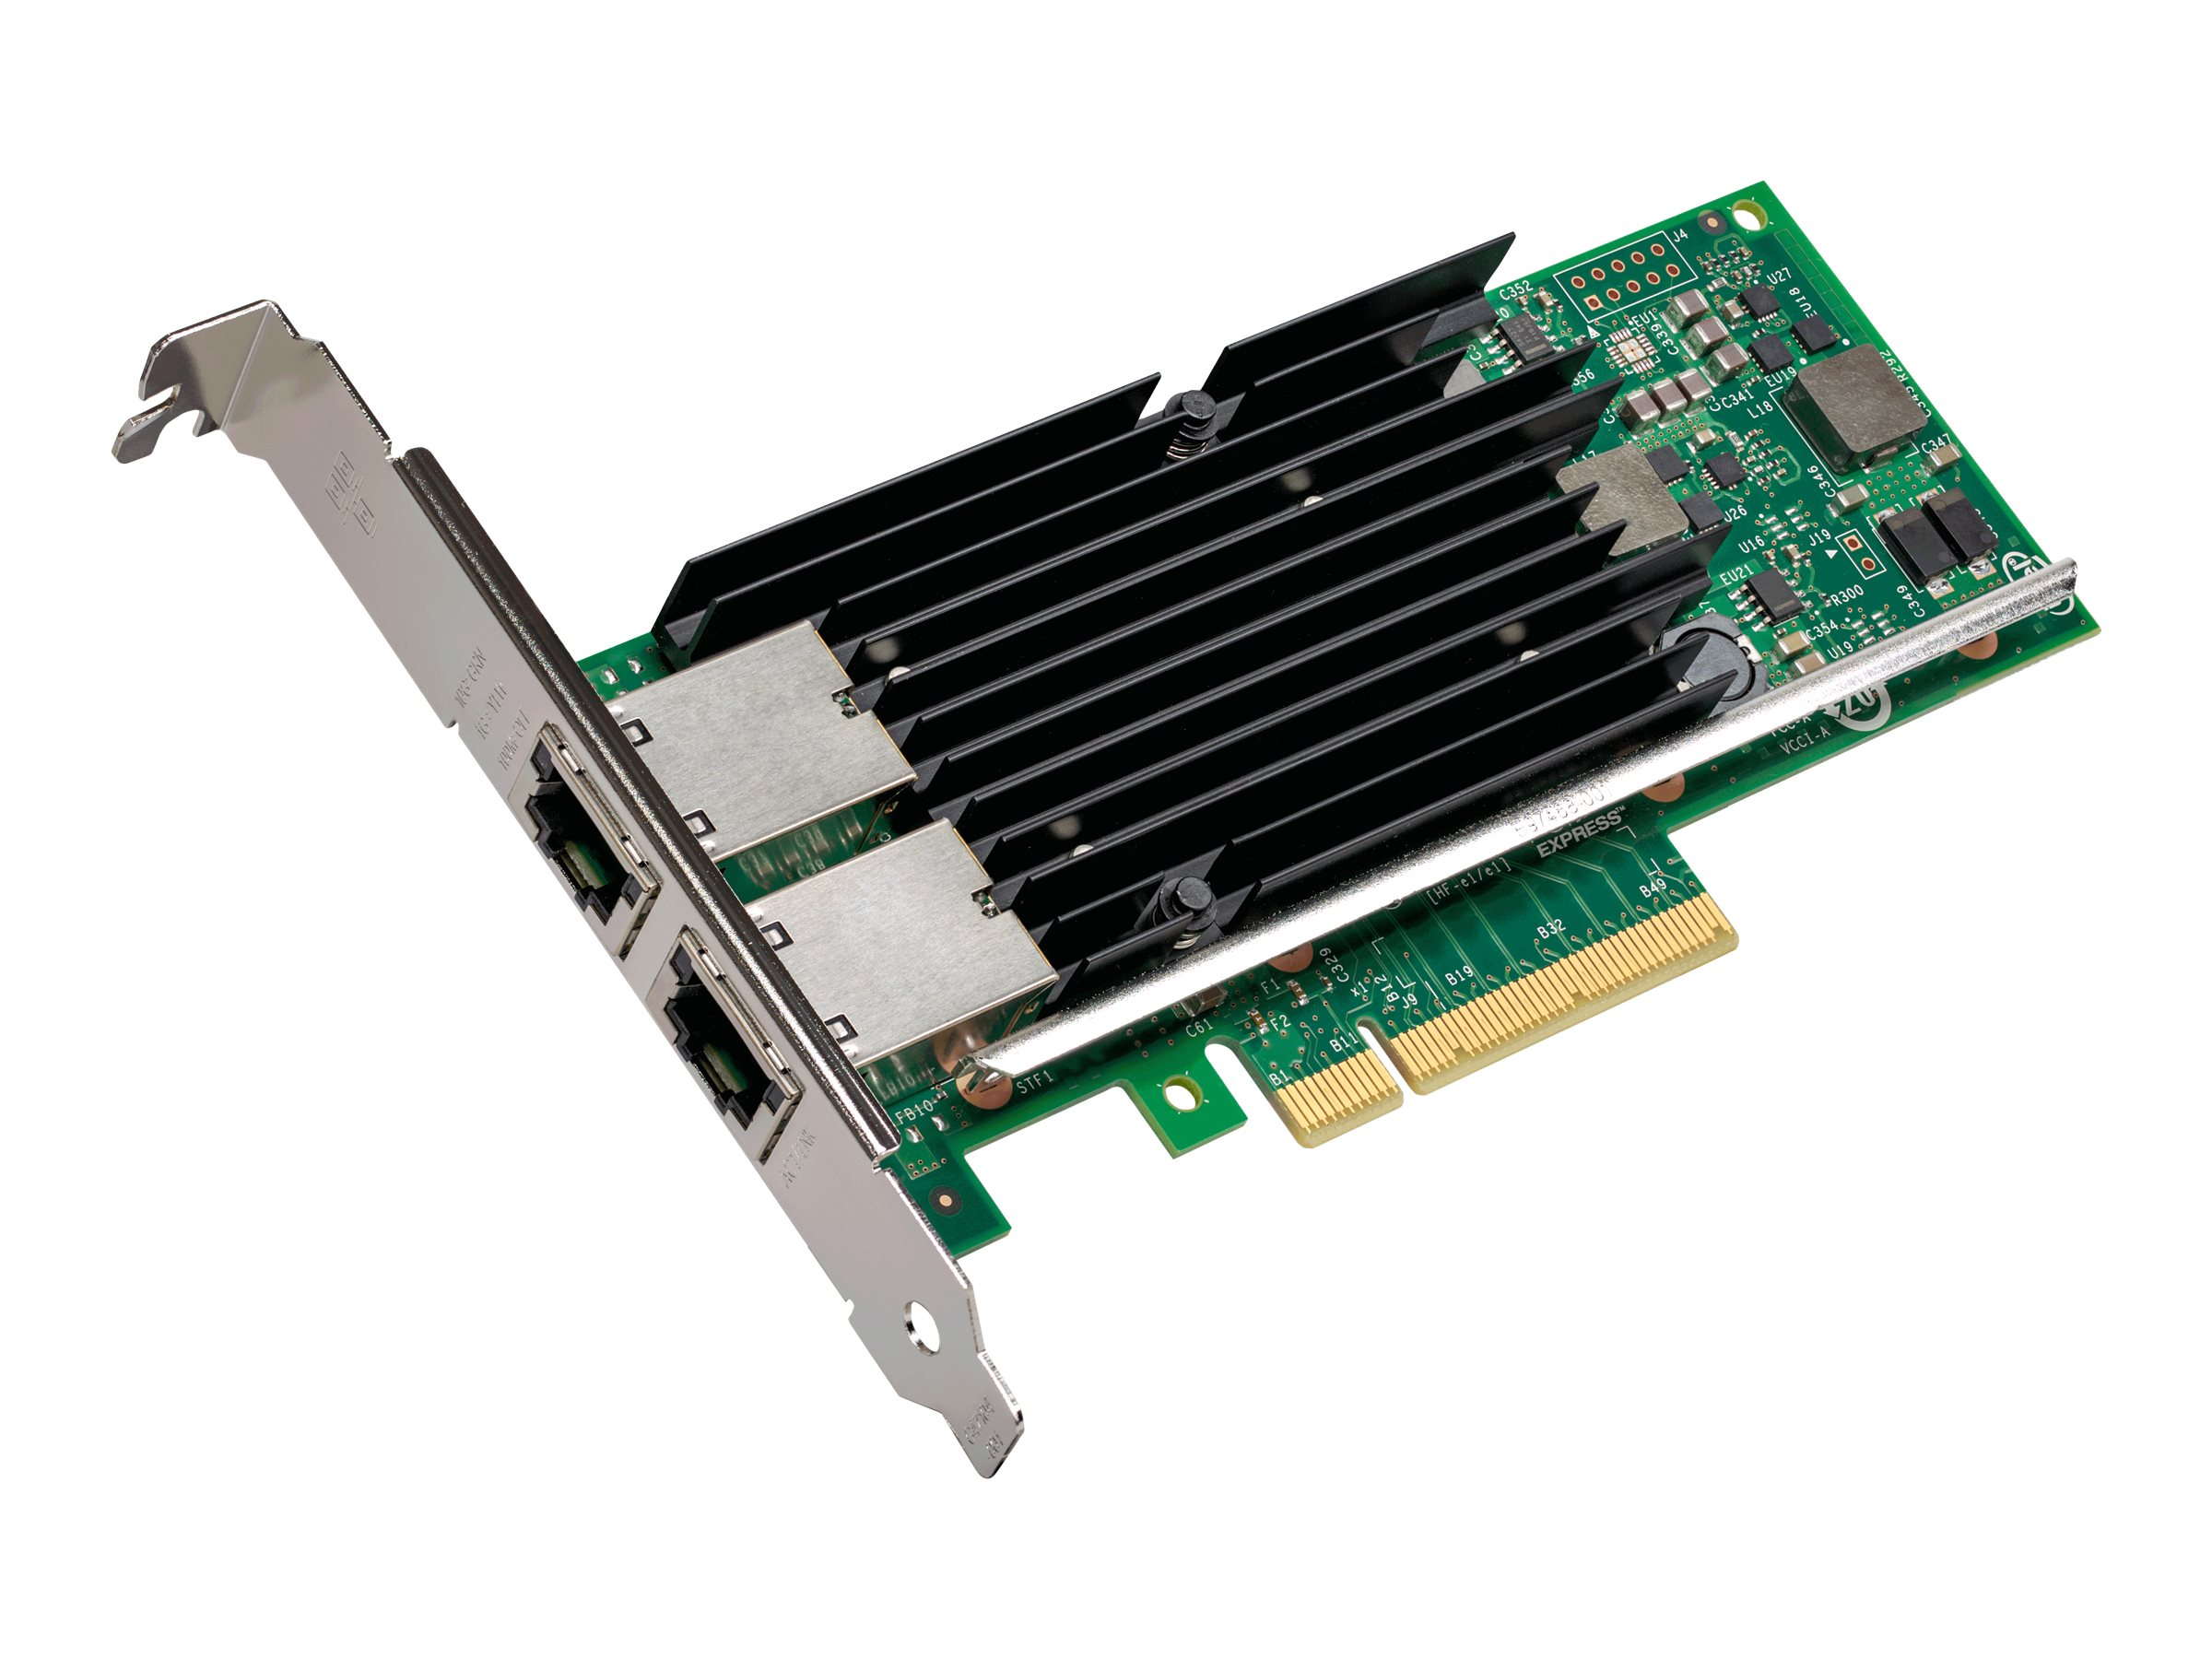 Intel Ethernet Converged Network Adapter X540-T2 - network adapter - PCIe 2.1 x8 - 10Gb Ethernet x 2